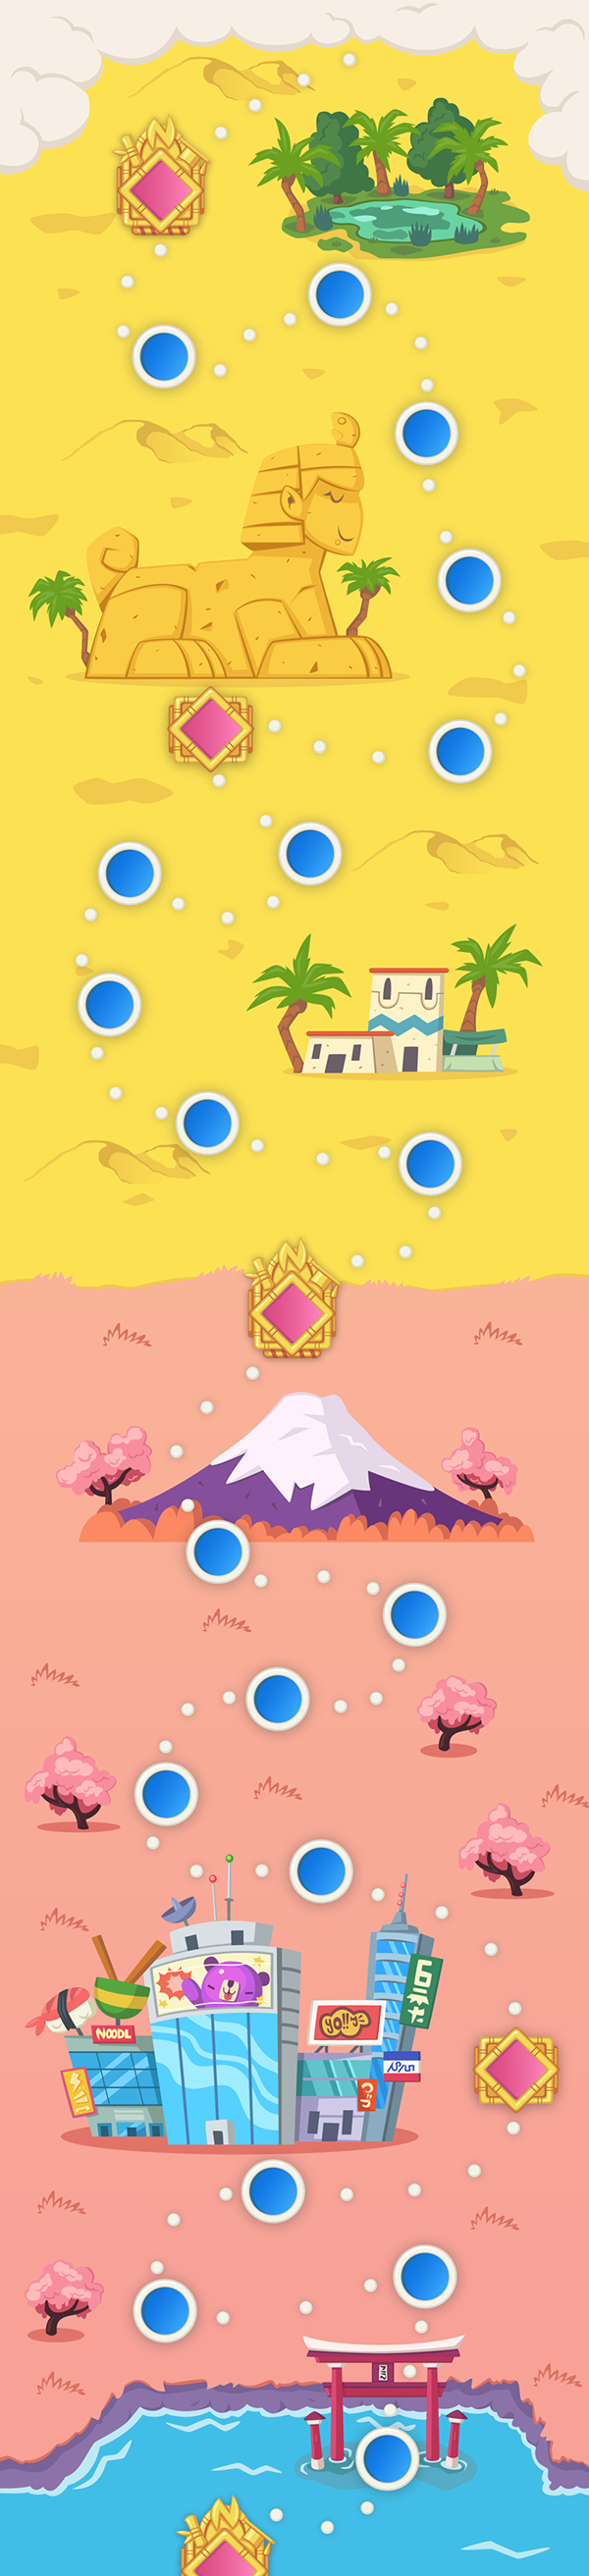 Drwton mobile game world map on behance gumiabroncs Choice Image